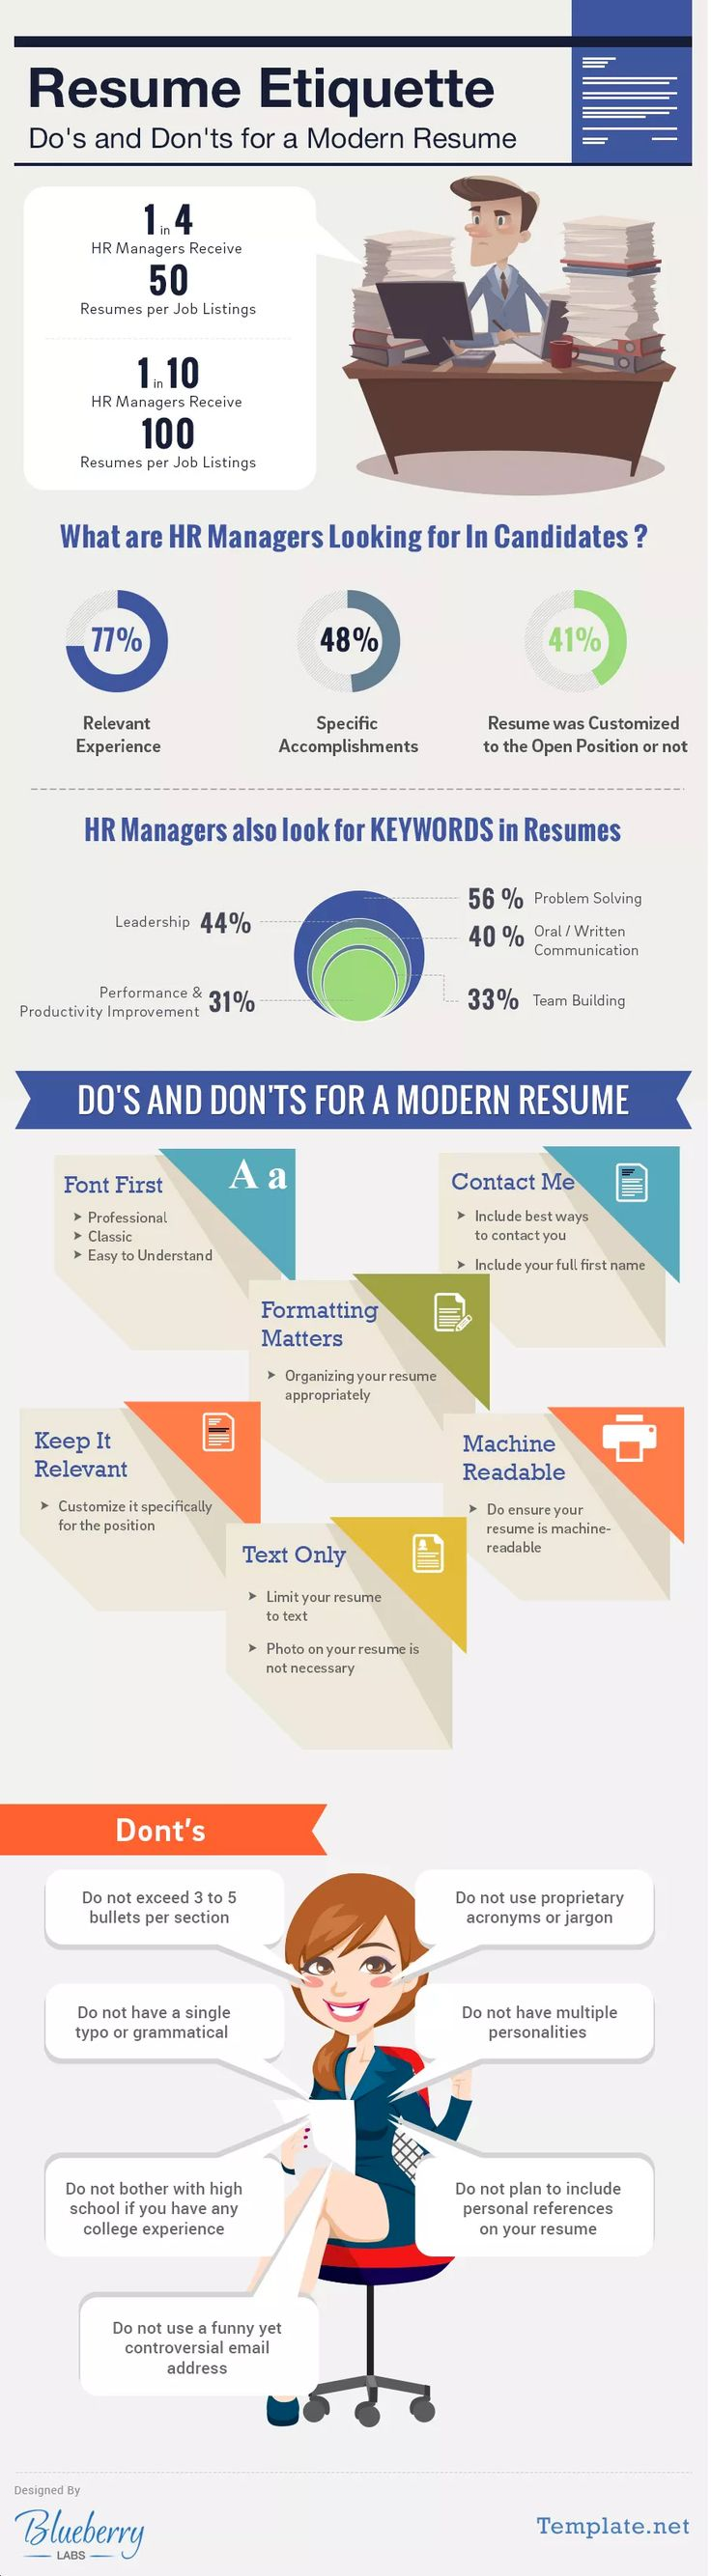 The Do's and Don'ts of the Modern Resumé (Infographic) - Provided by Entrepreneur.